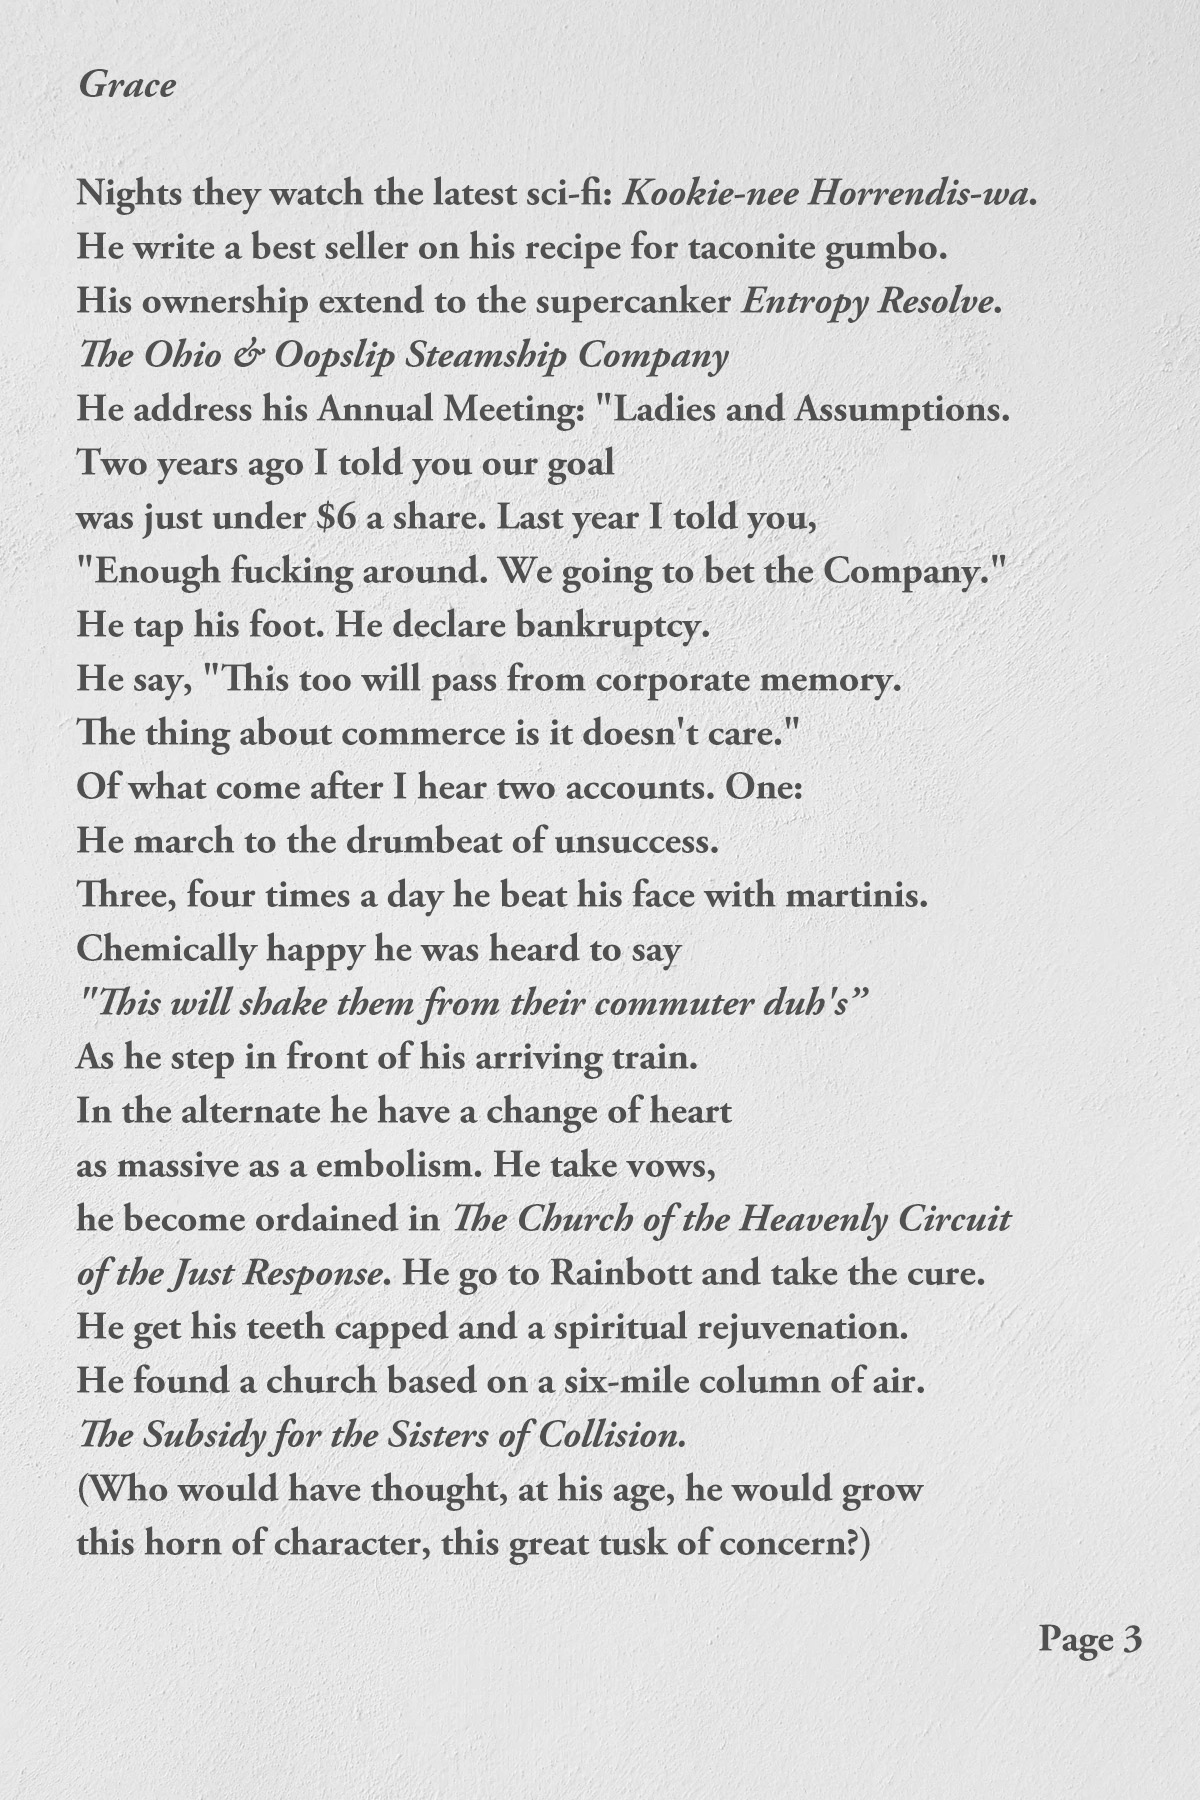 Grace by John Barr page 3